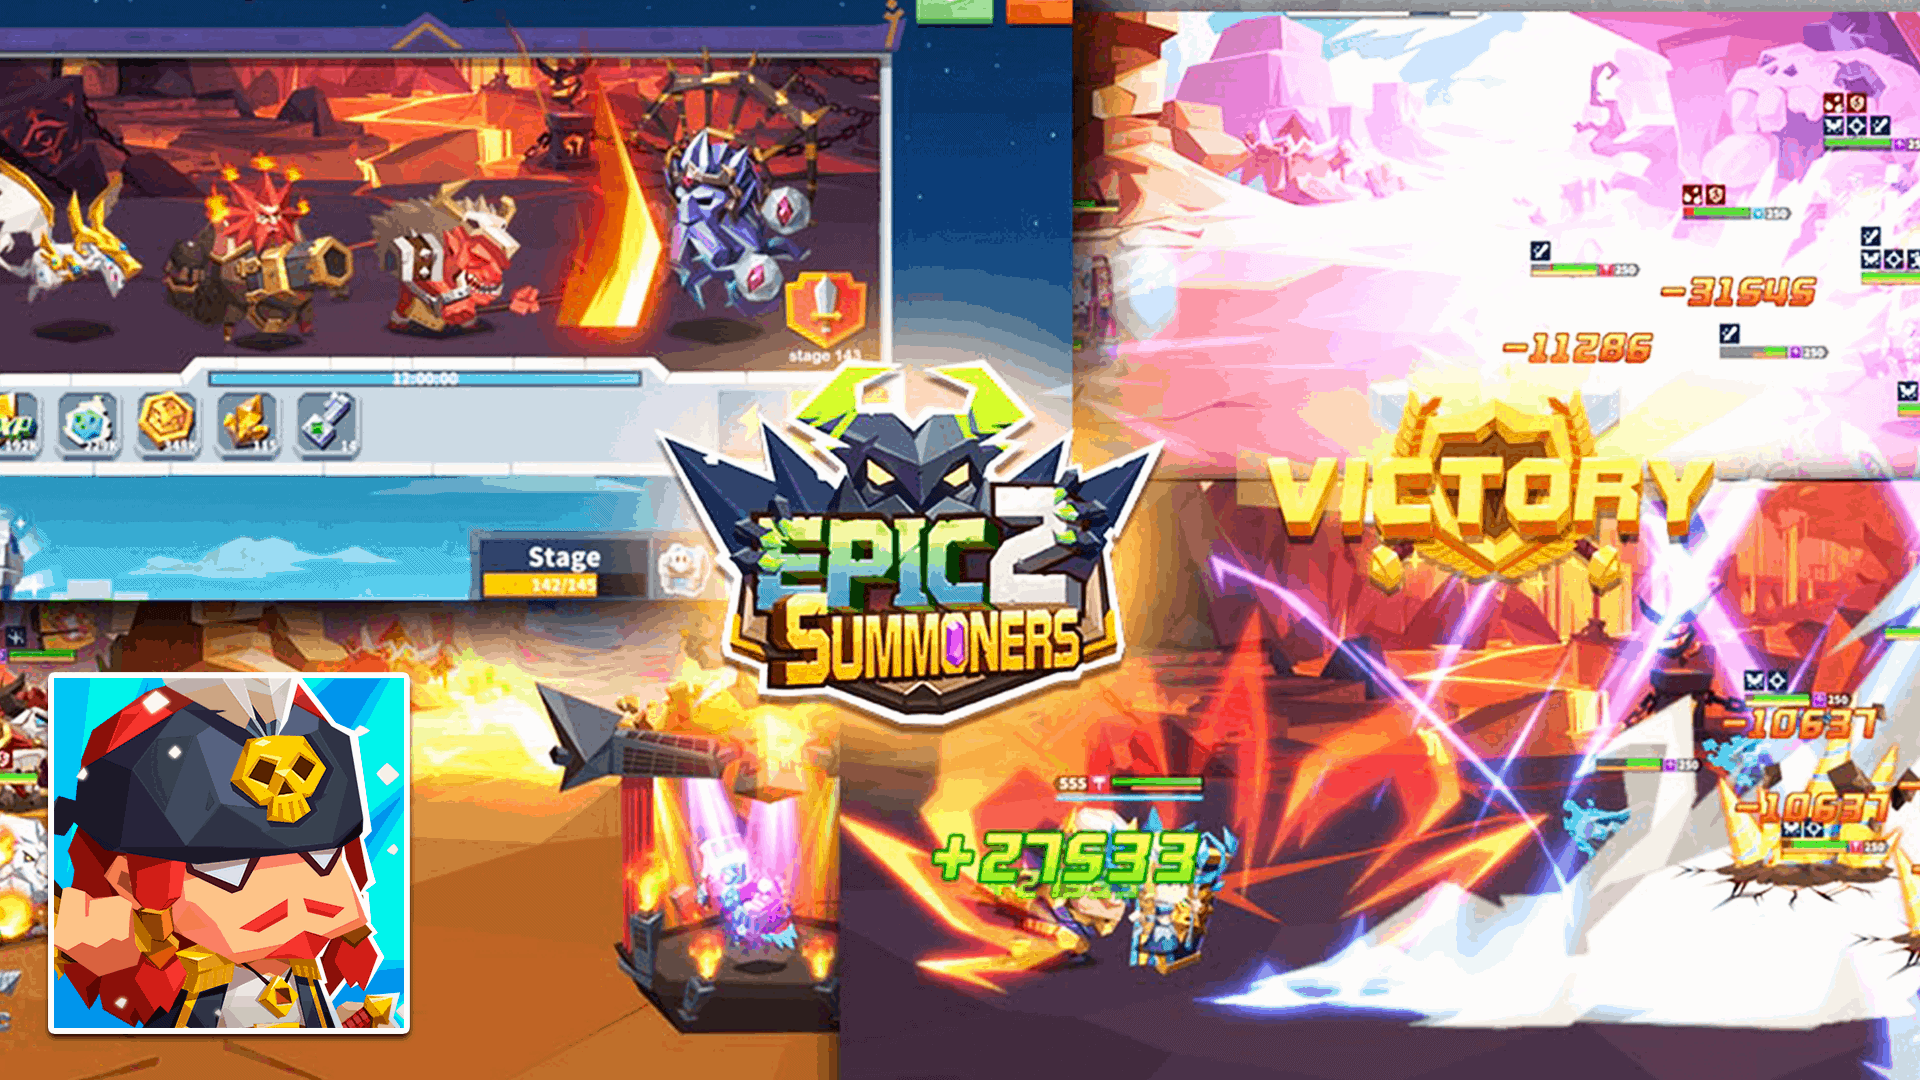 Epic Summoners 2 Guide – Tips & Tricks To Become A Better Player